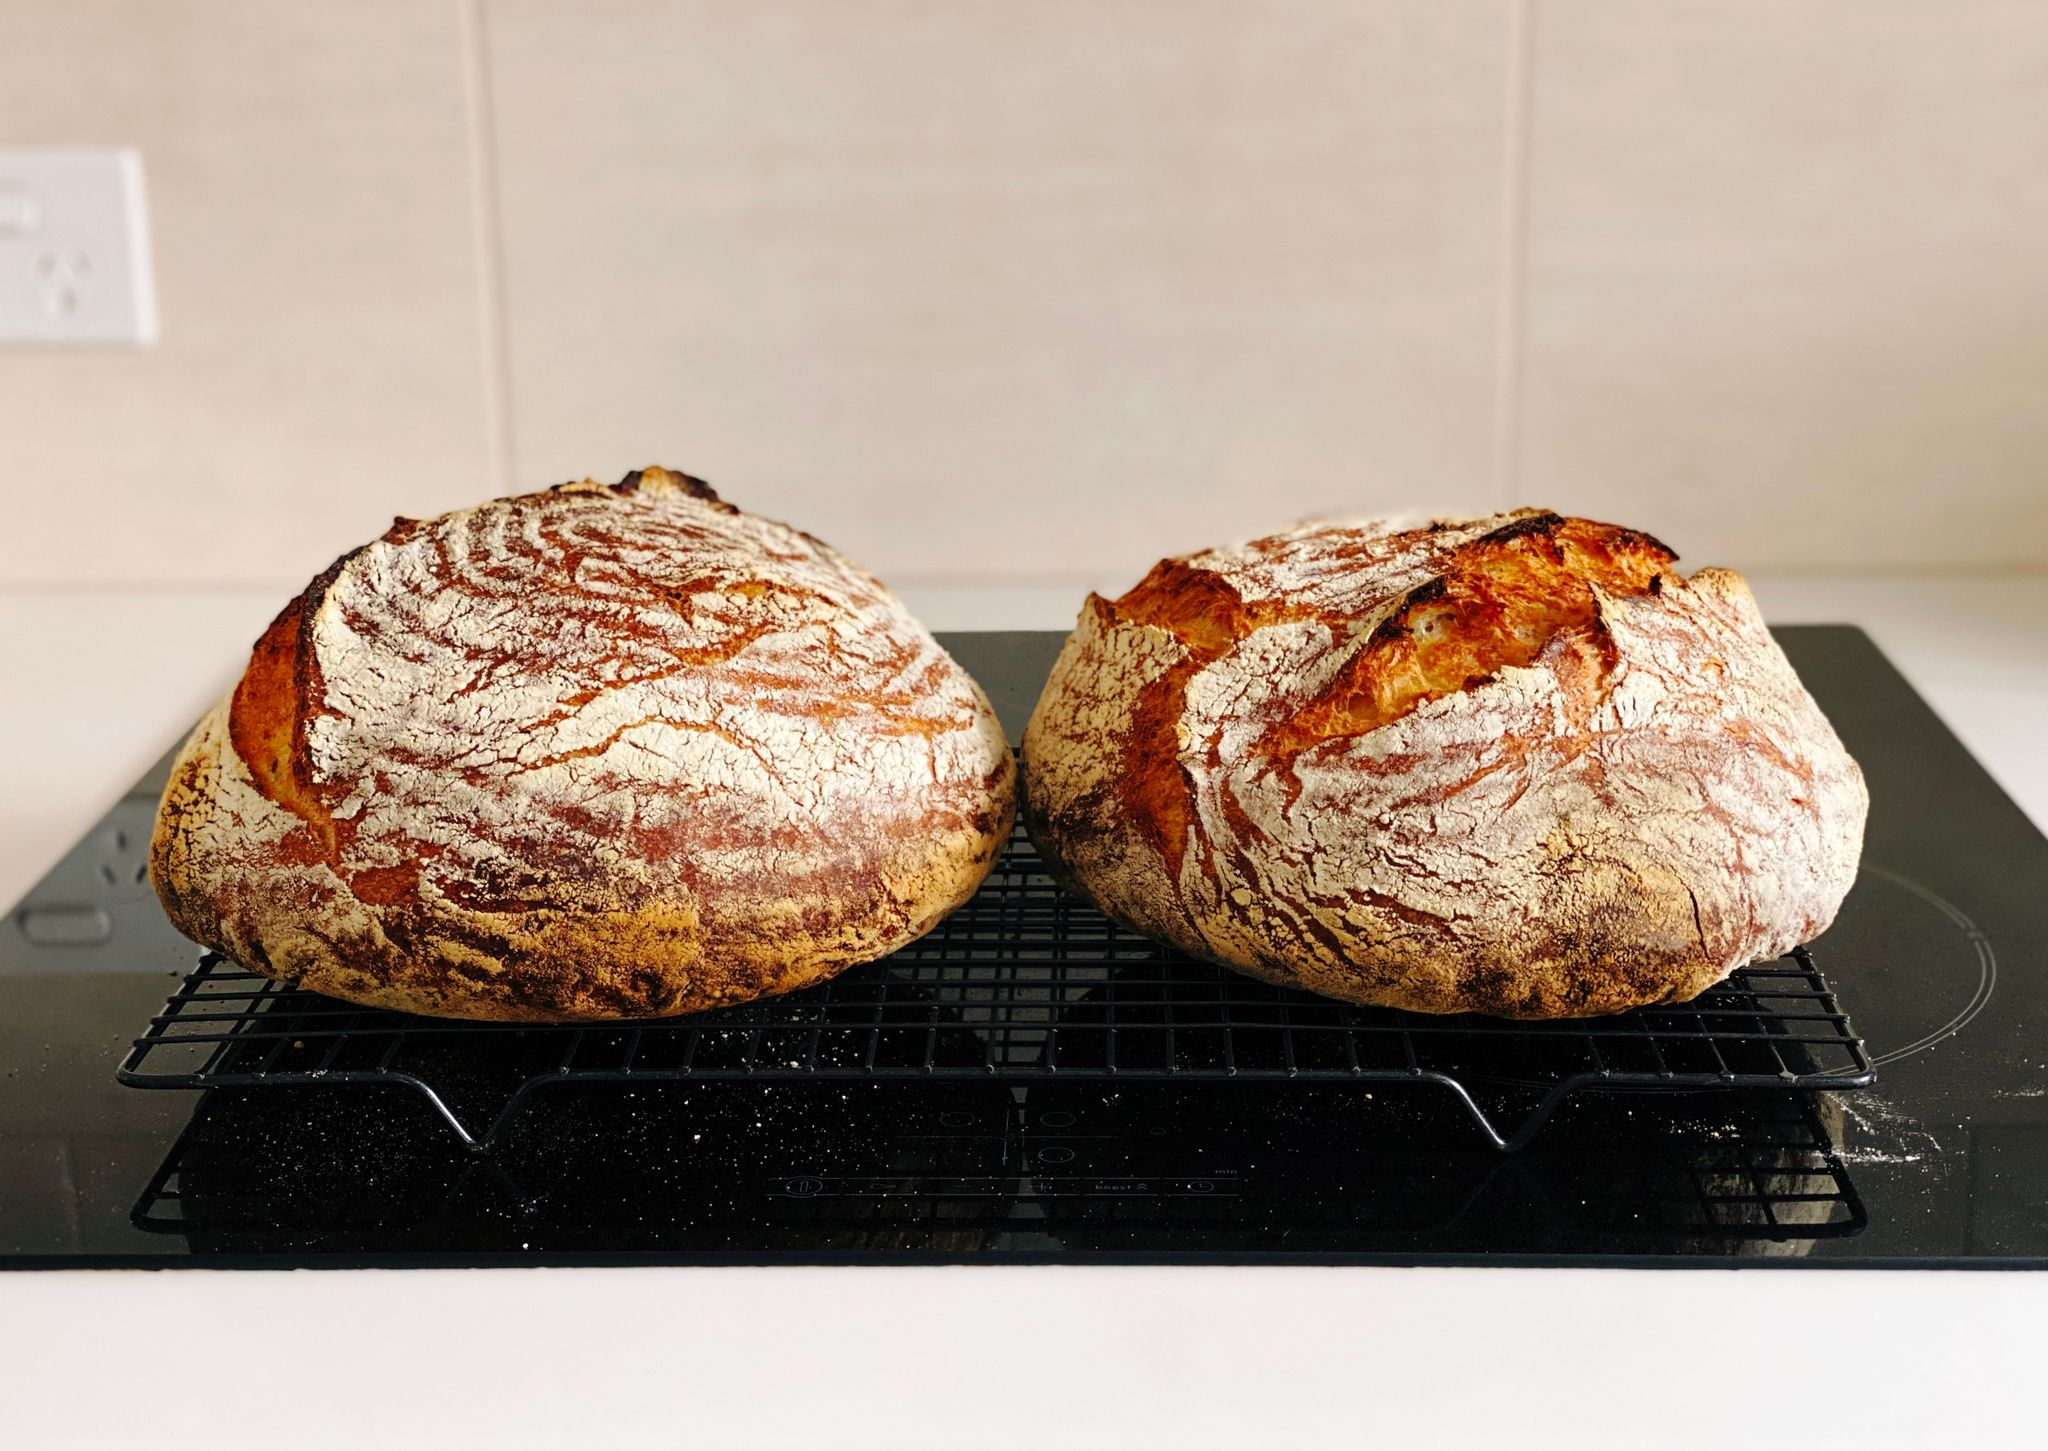 A photo of two round golden brown loaves of bread sitting on a cooling rack.